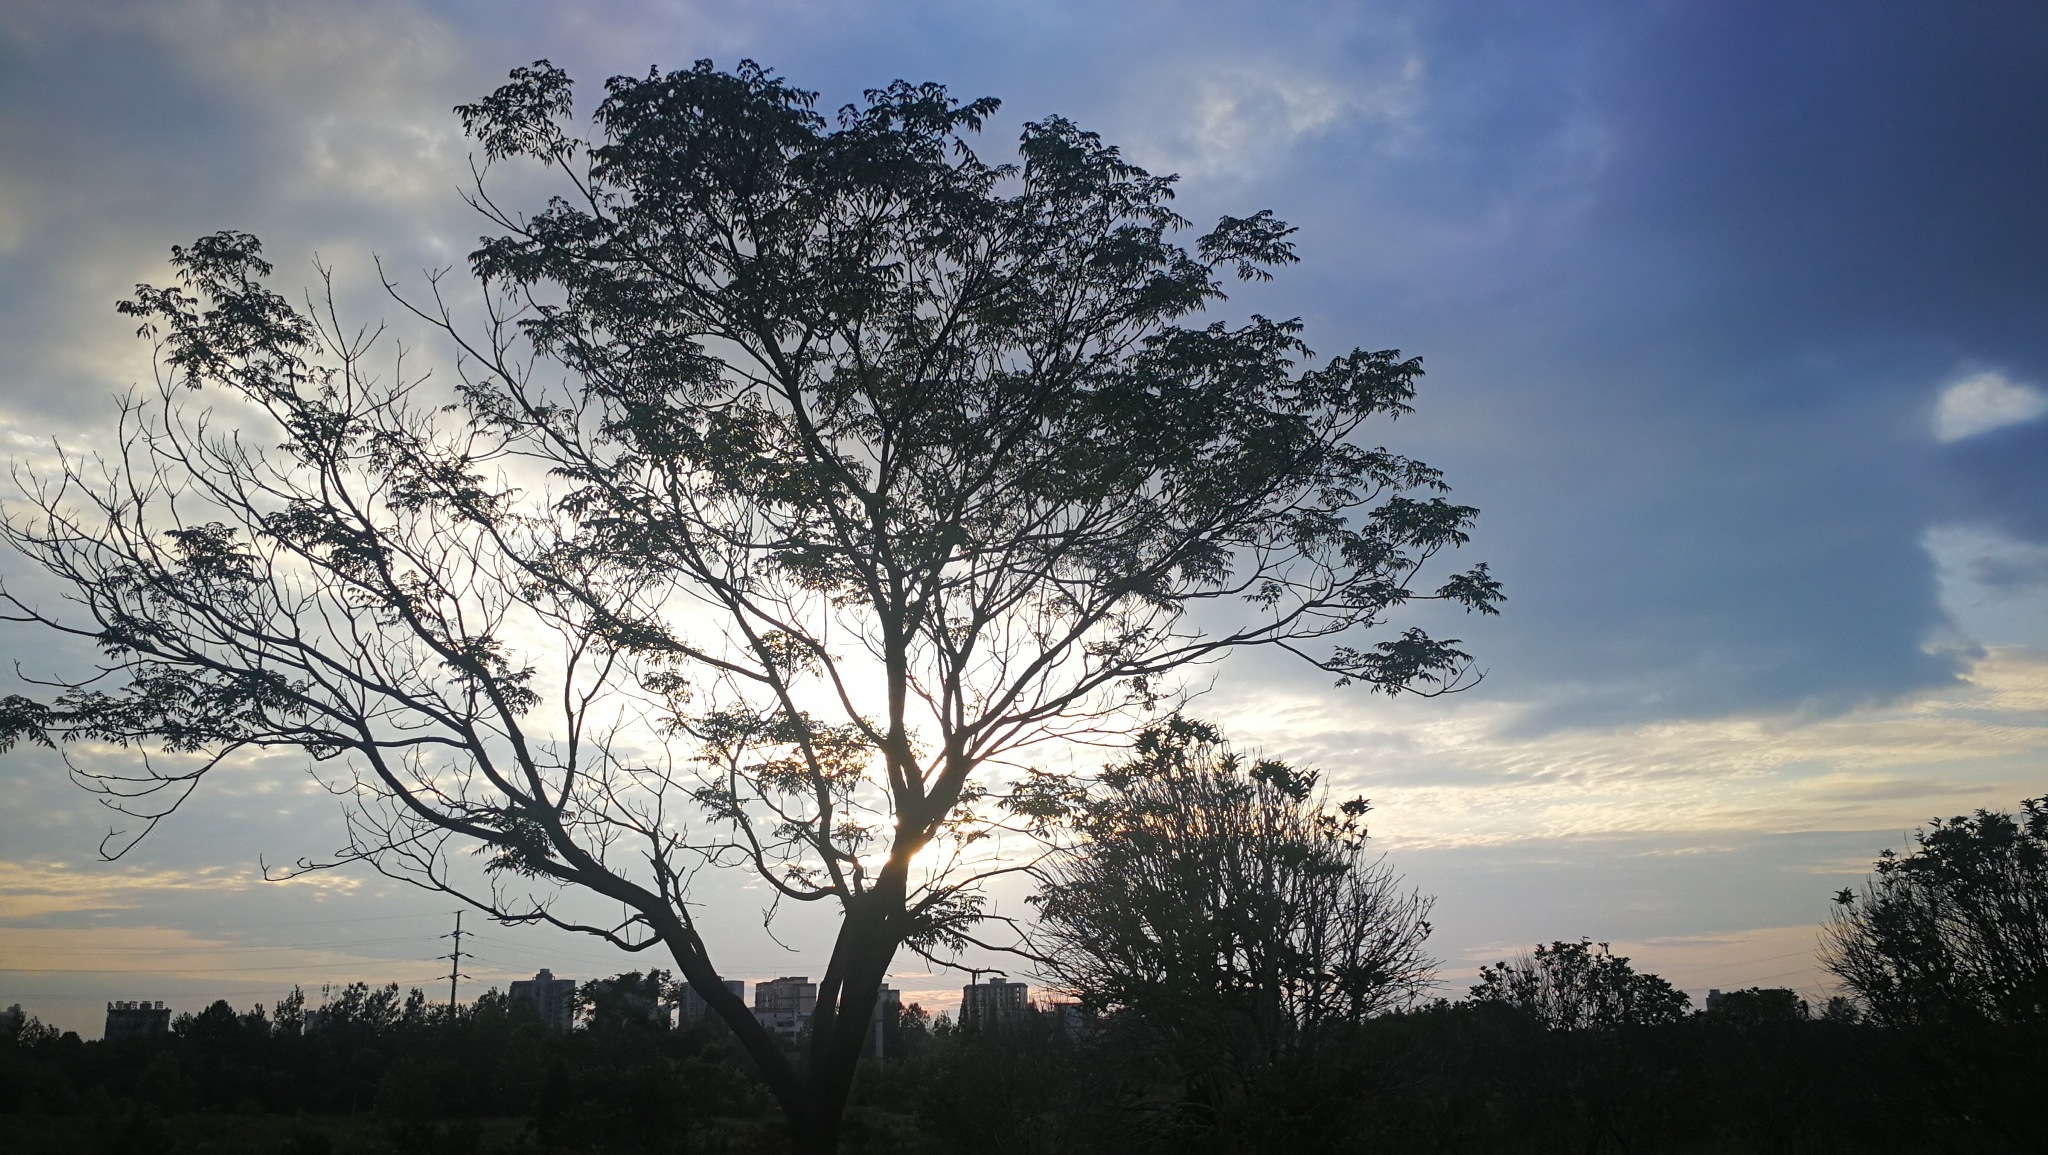 Dusk twilights on Branches  by Studio89Fotos - 湖北武汉